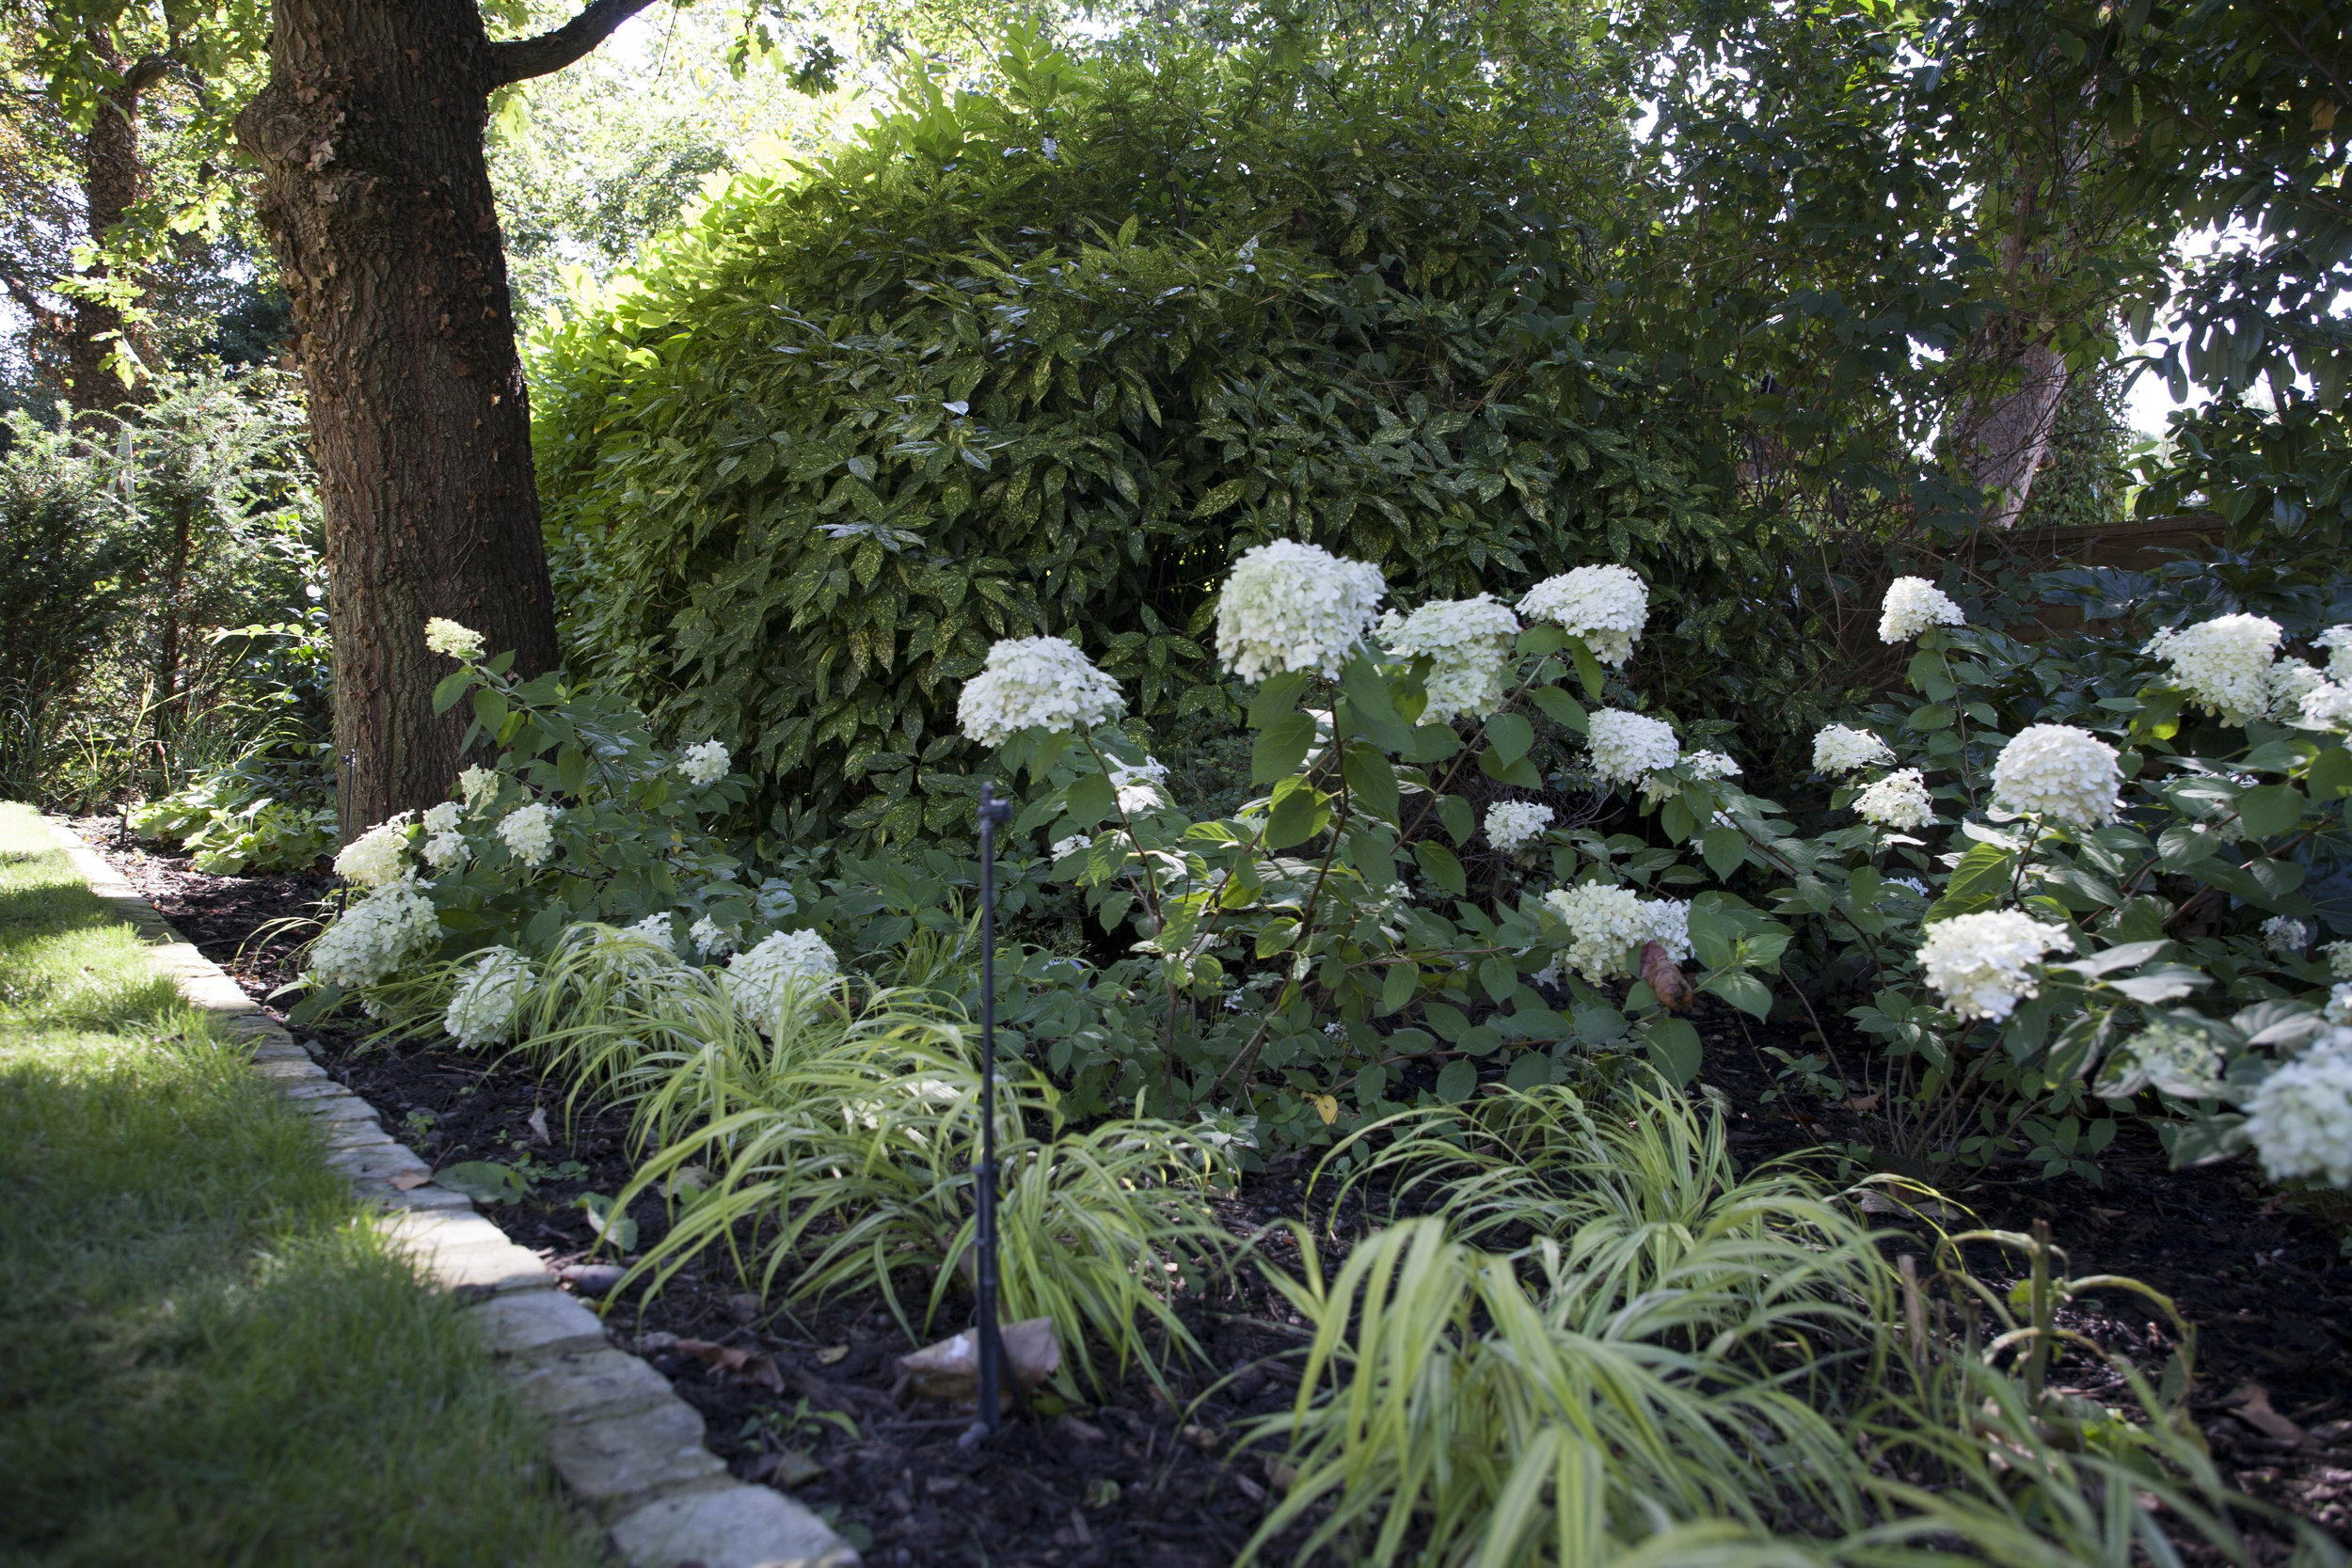 - Hydrangea 'Limelight' and golden Hakone grass light up the shady areas of the garden.